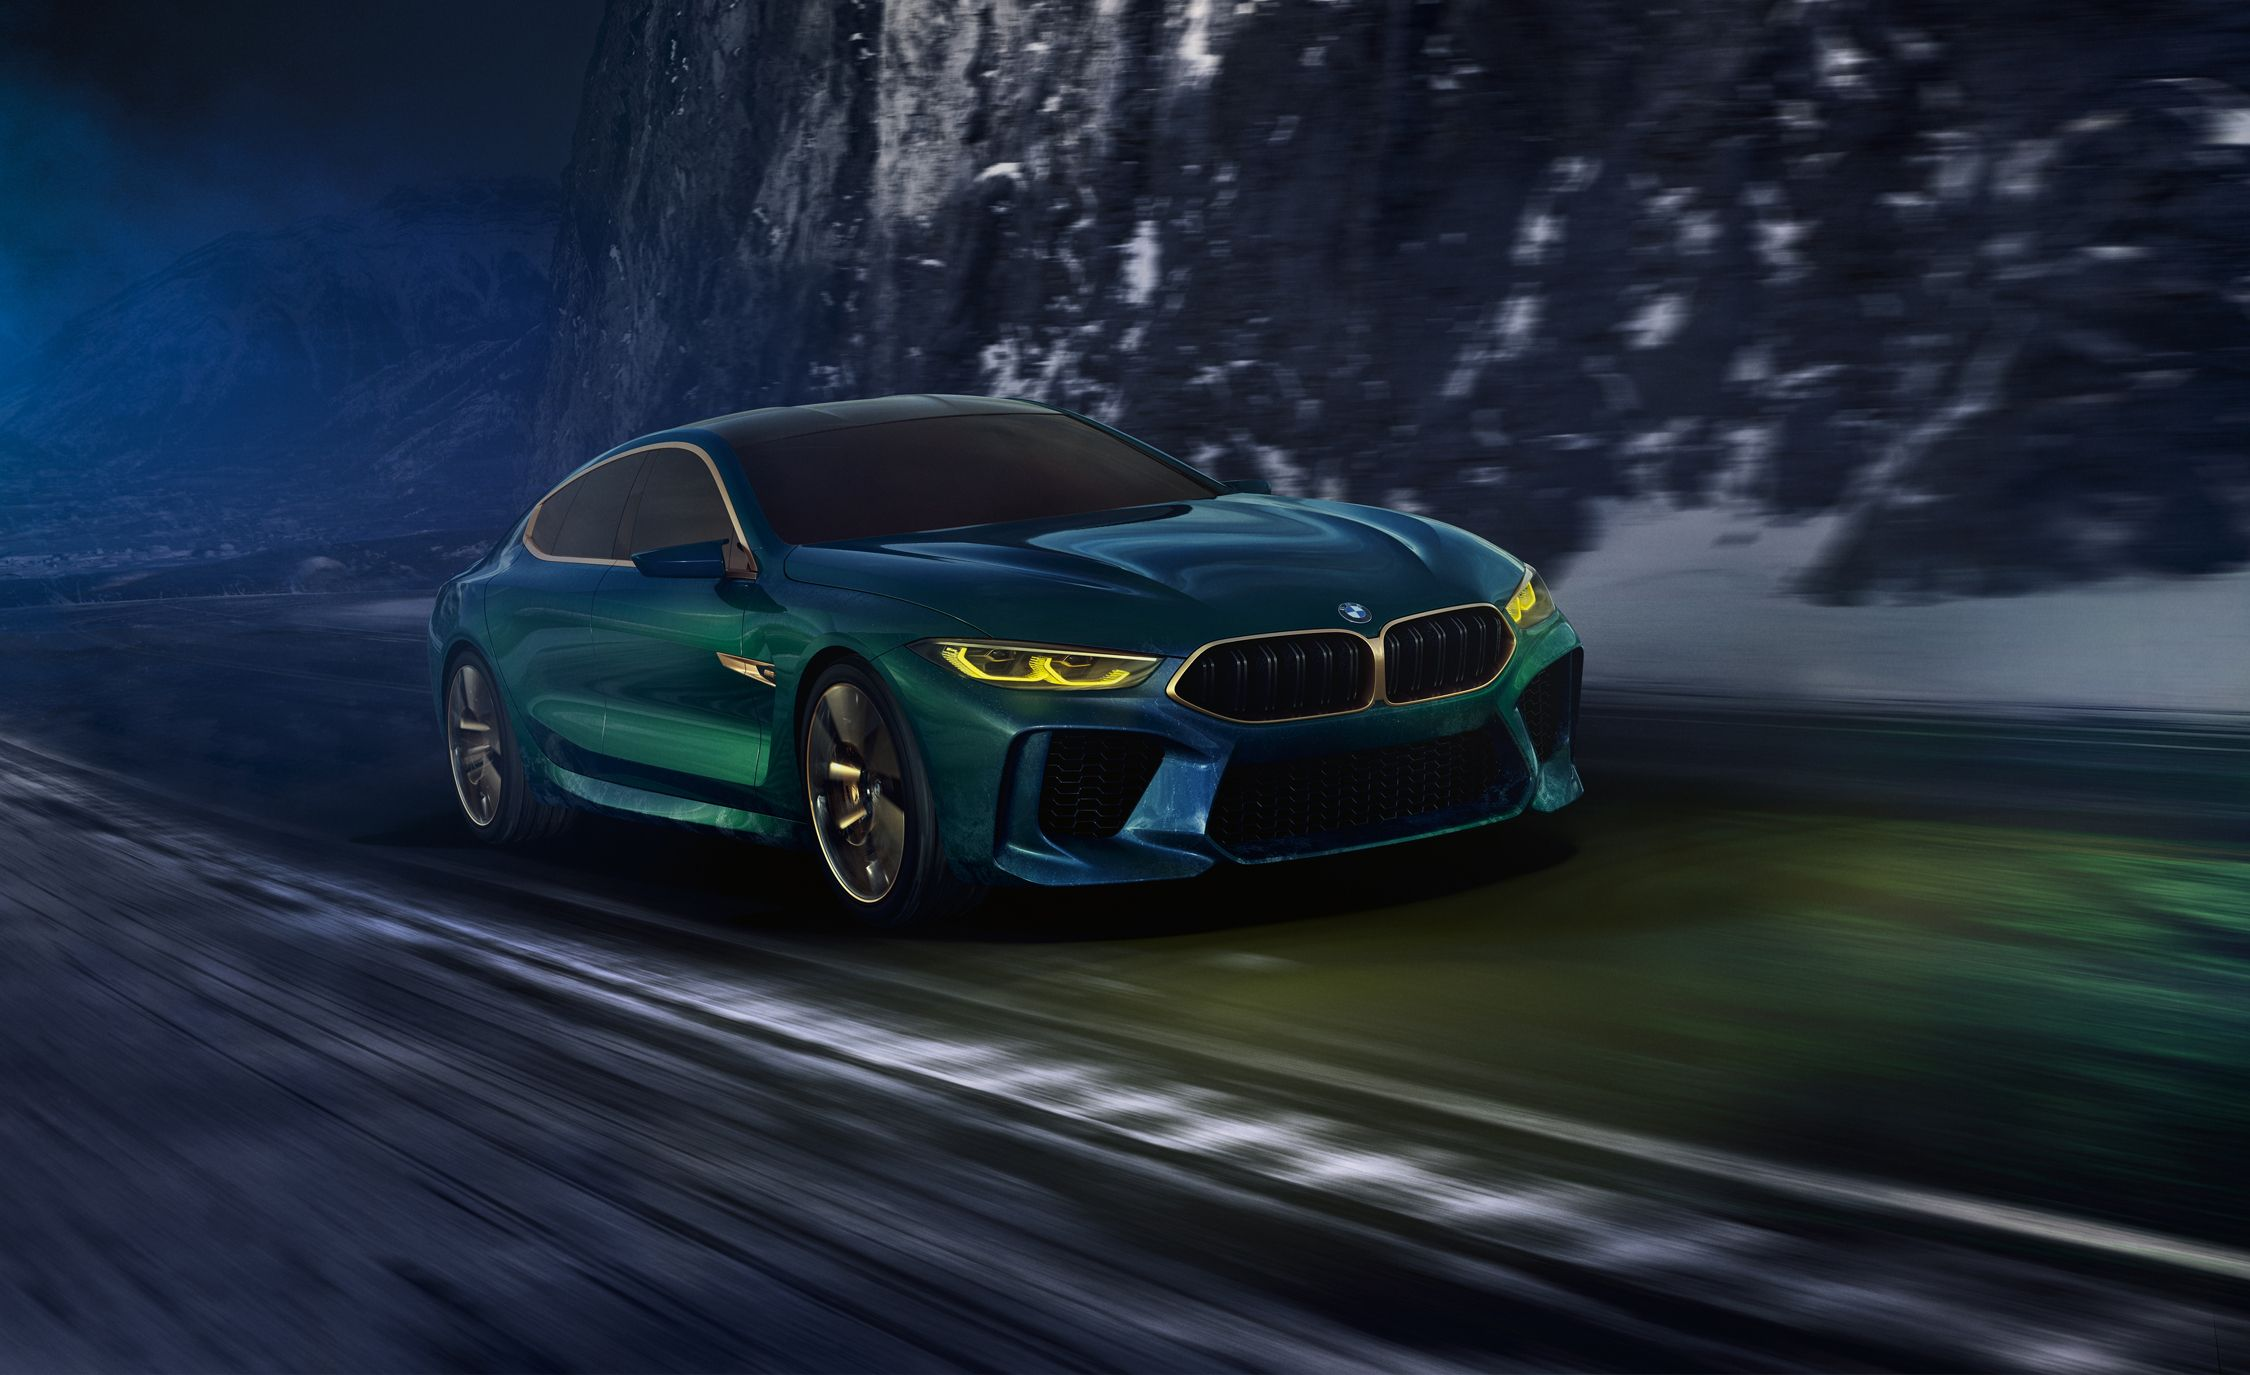 2020 Bmw M8 Gran Coupe Reviews Bmw M8 Gran Coupe Price Photos